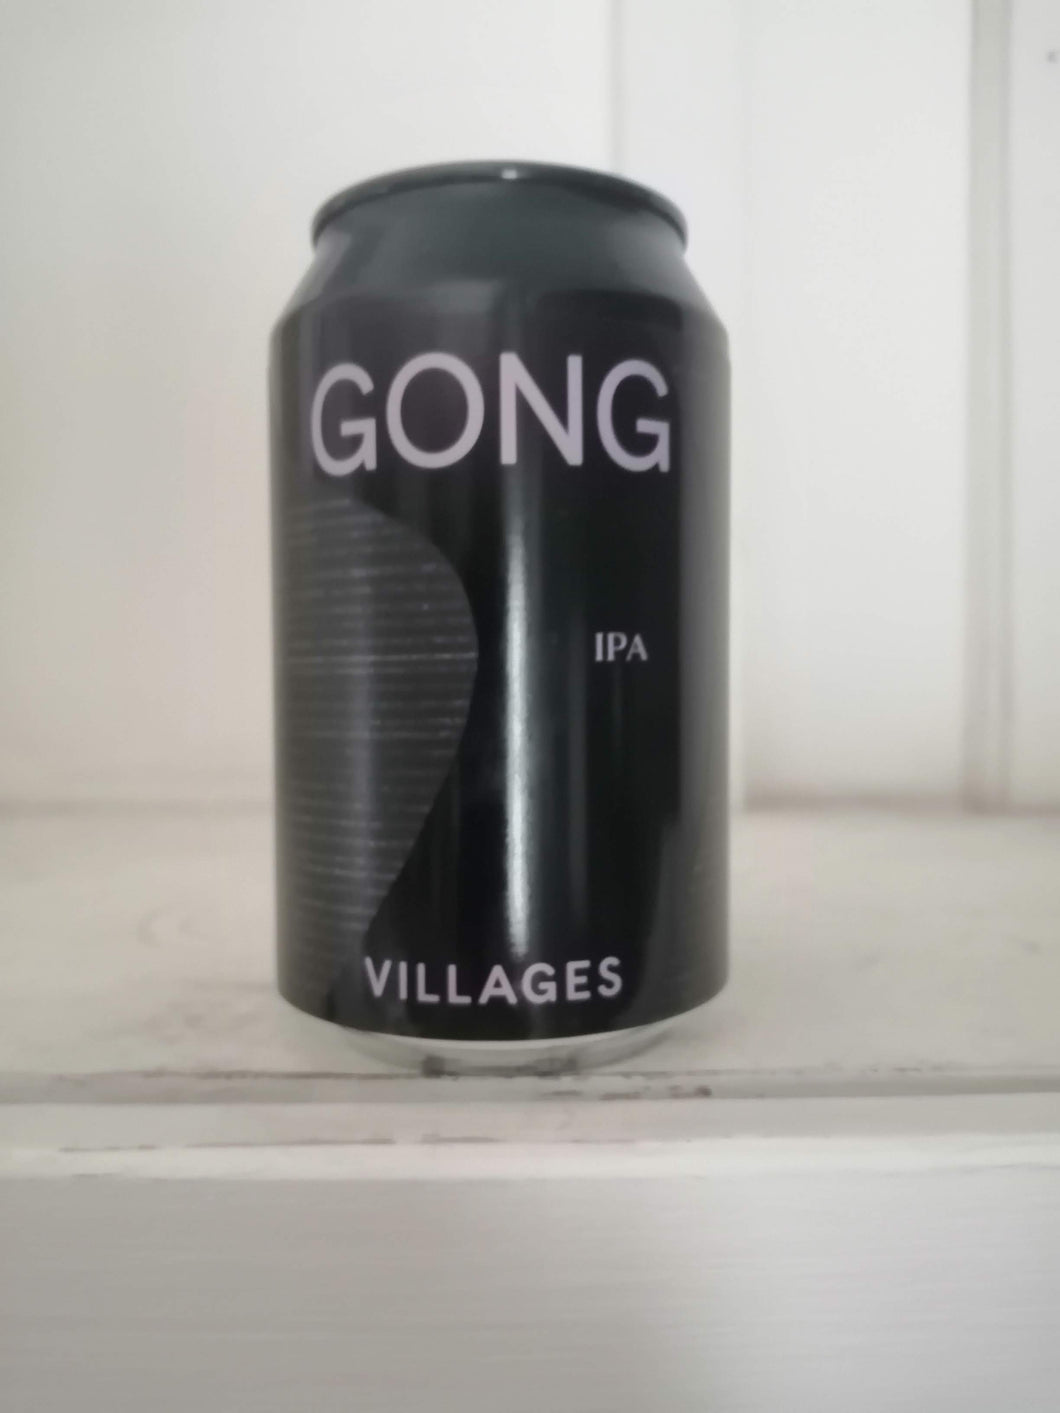 Villages Gong 6% (330ml can)